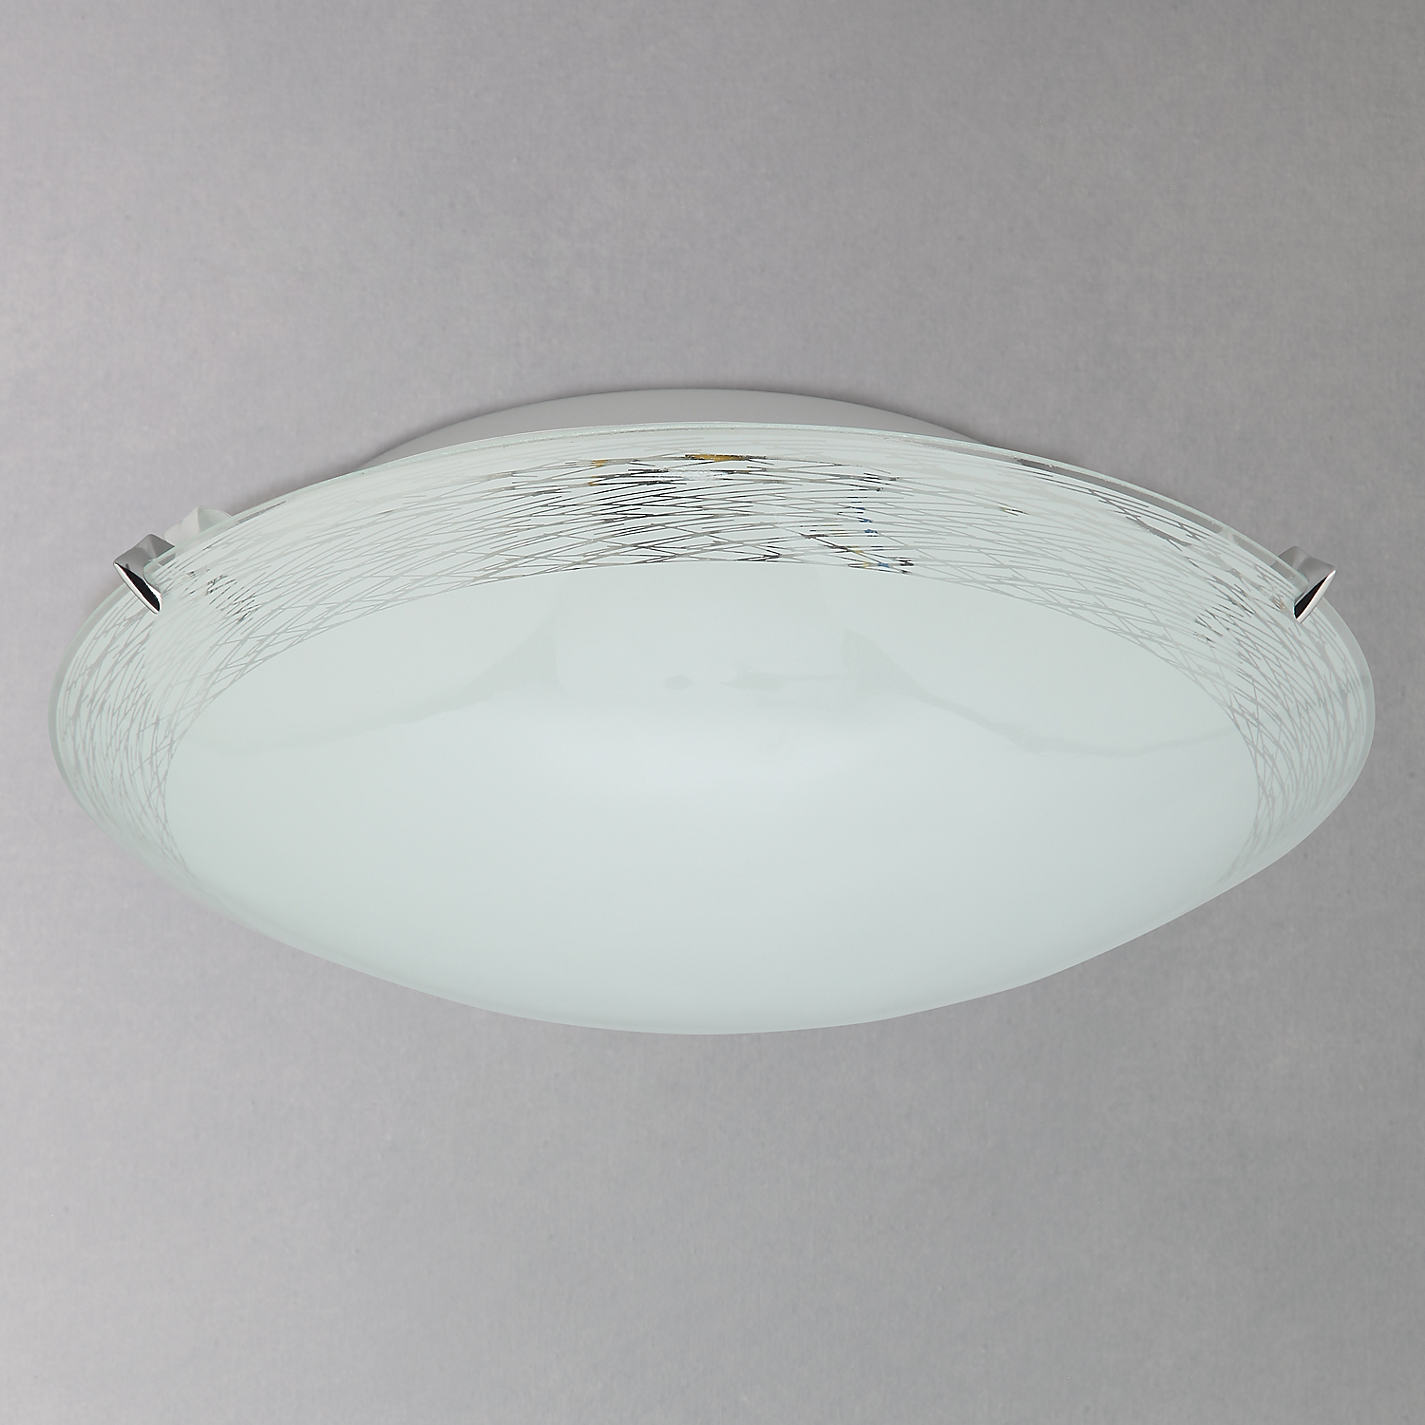 Bathroom Lights John Lewis buy john lewis conrad flush ceiling light | john lewis